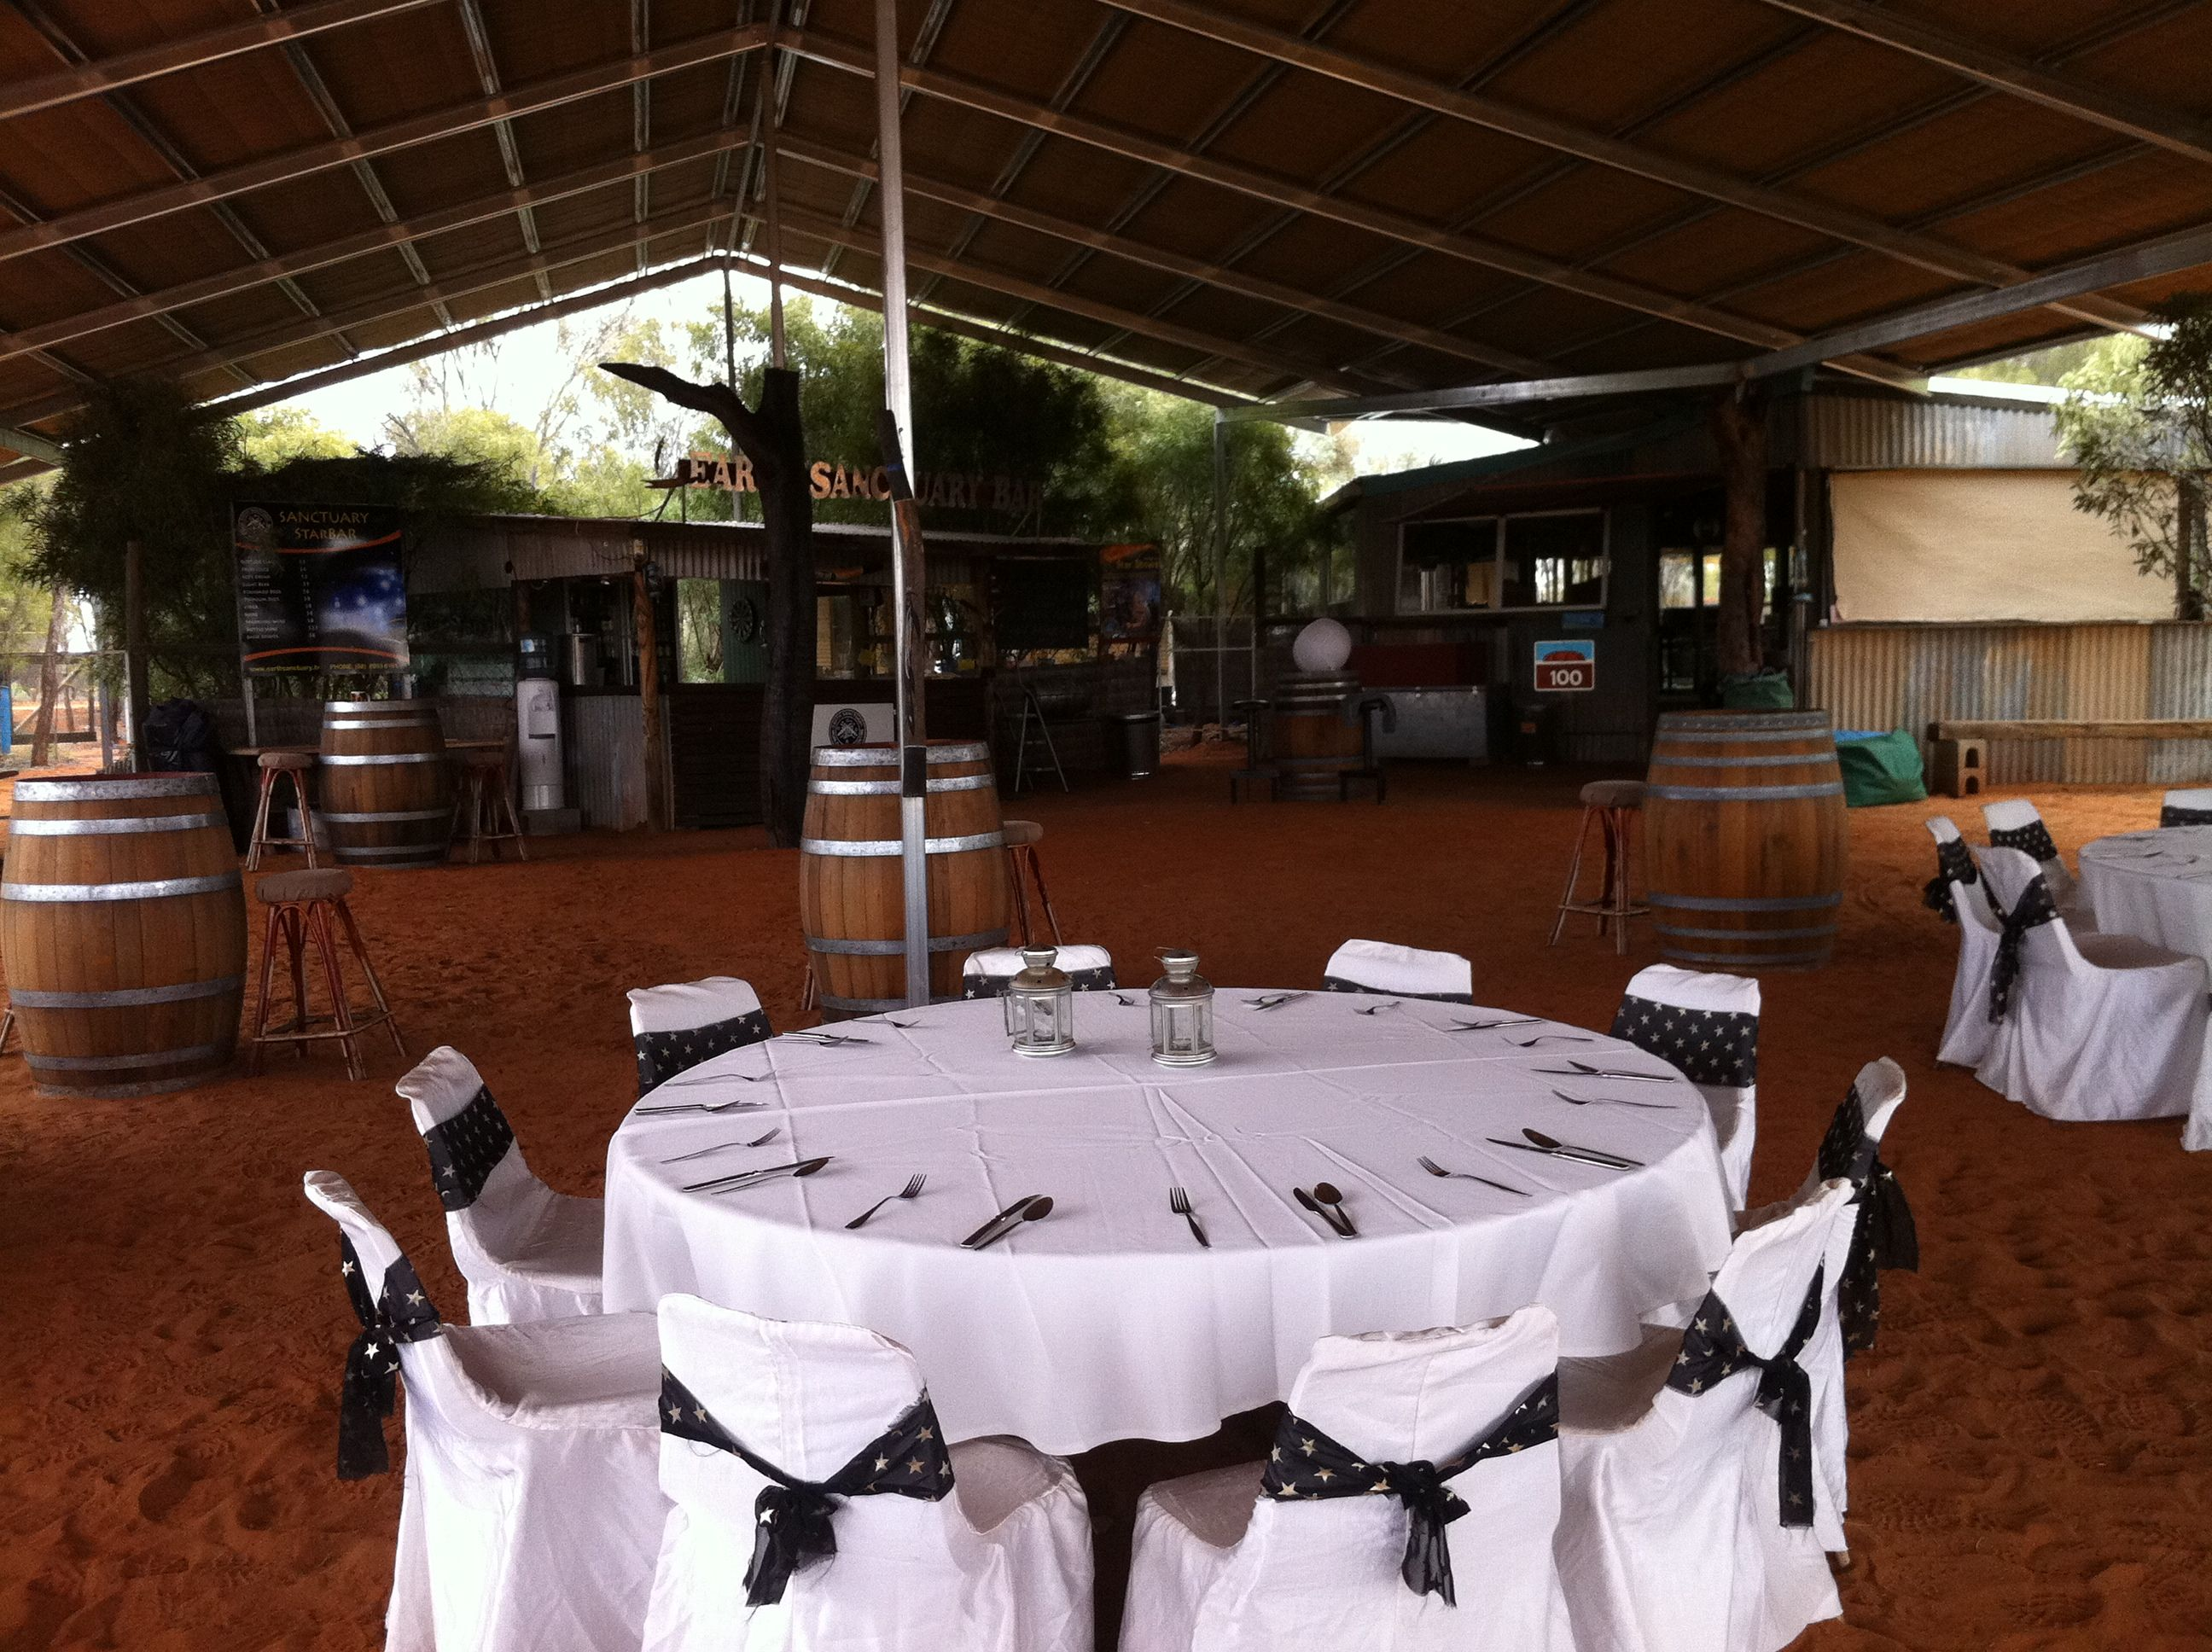 For a memorable Outback experience, check out Earth Sanctuary's Spirit of the Outback Dinner & Show